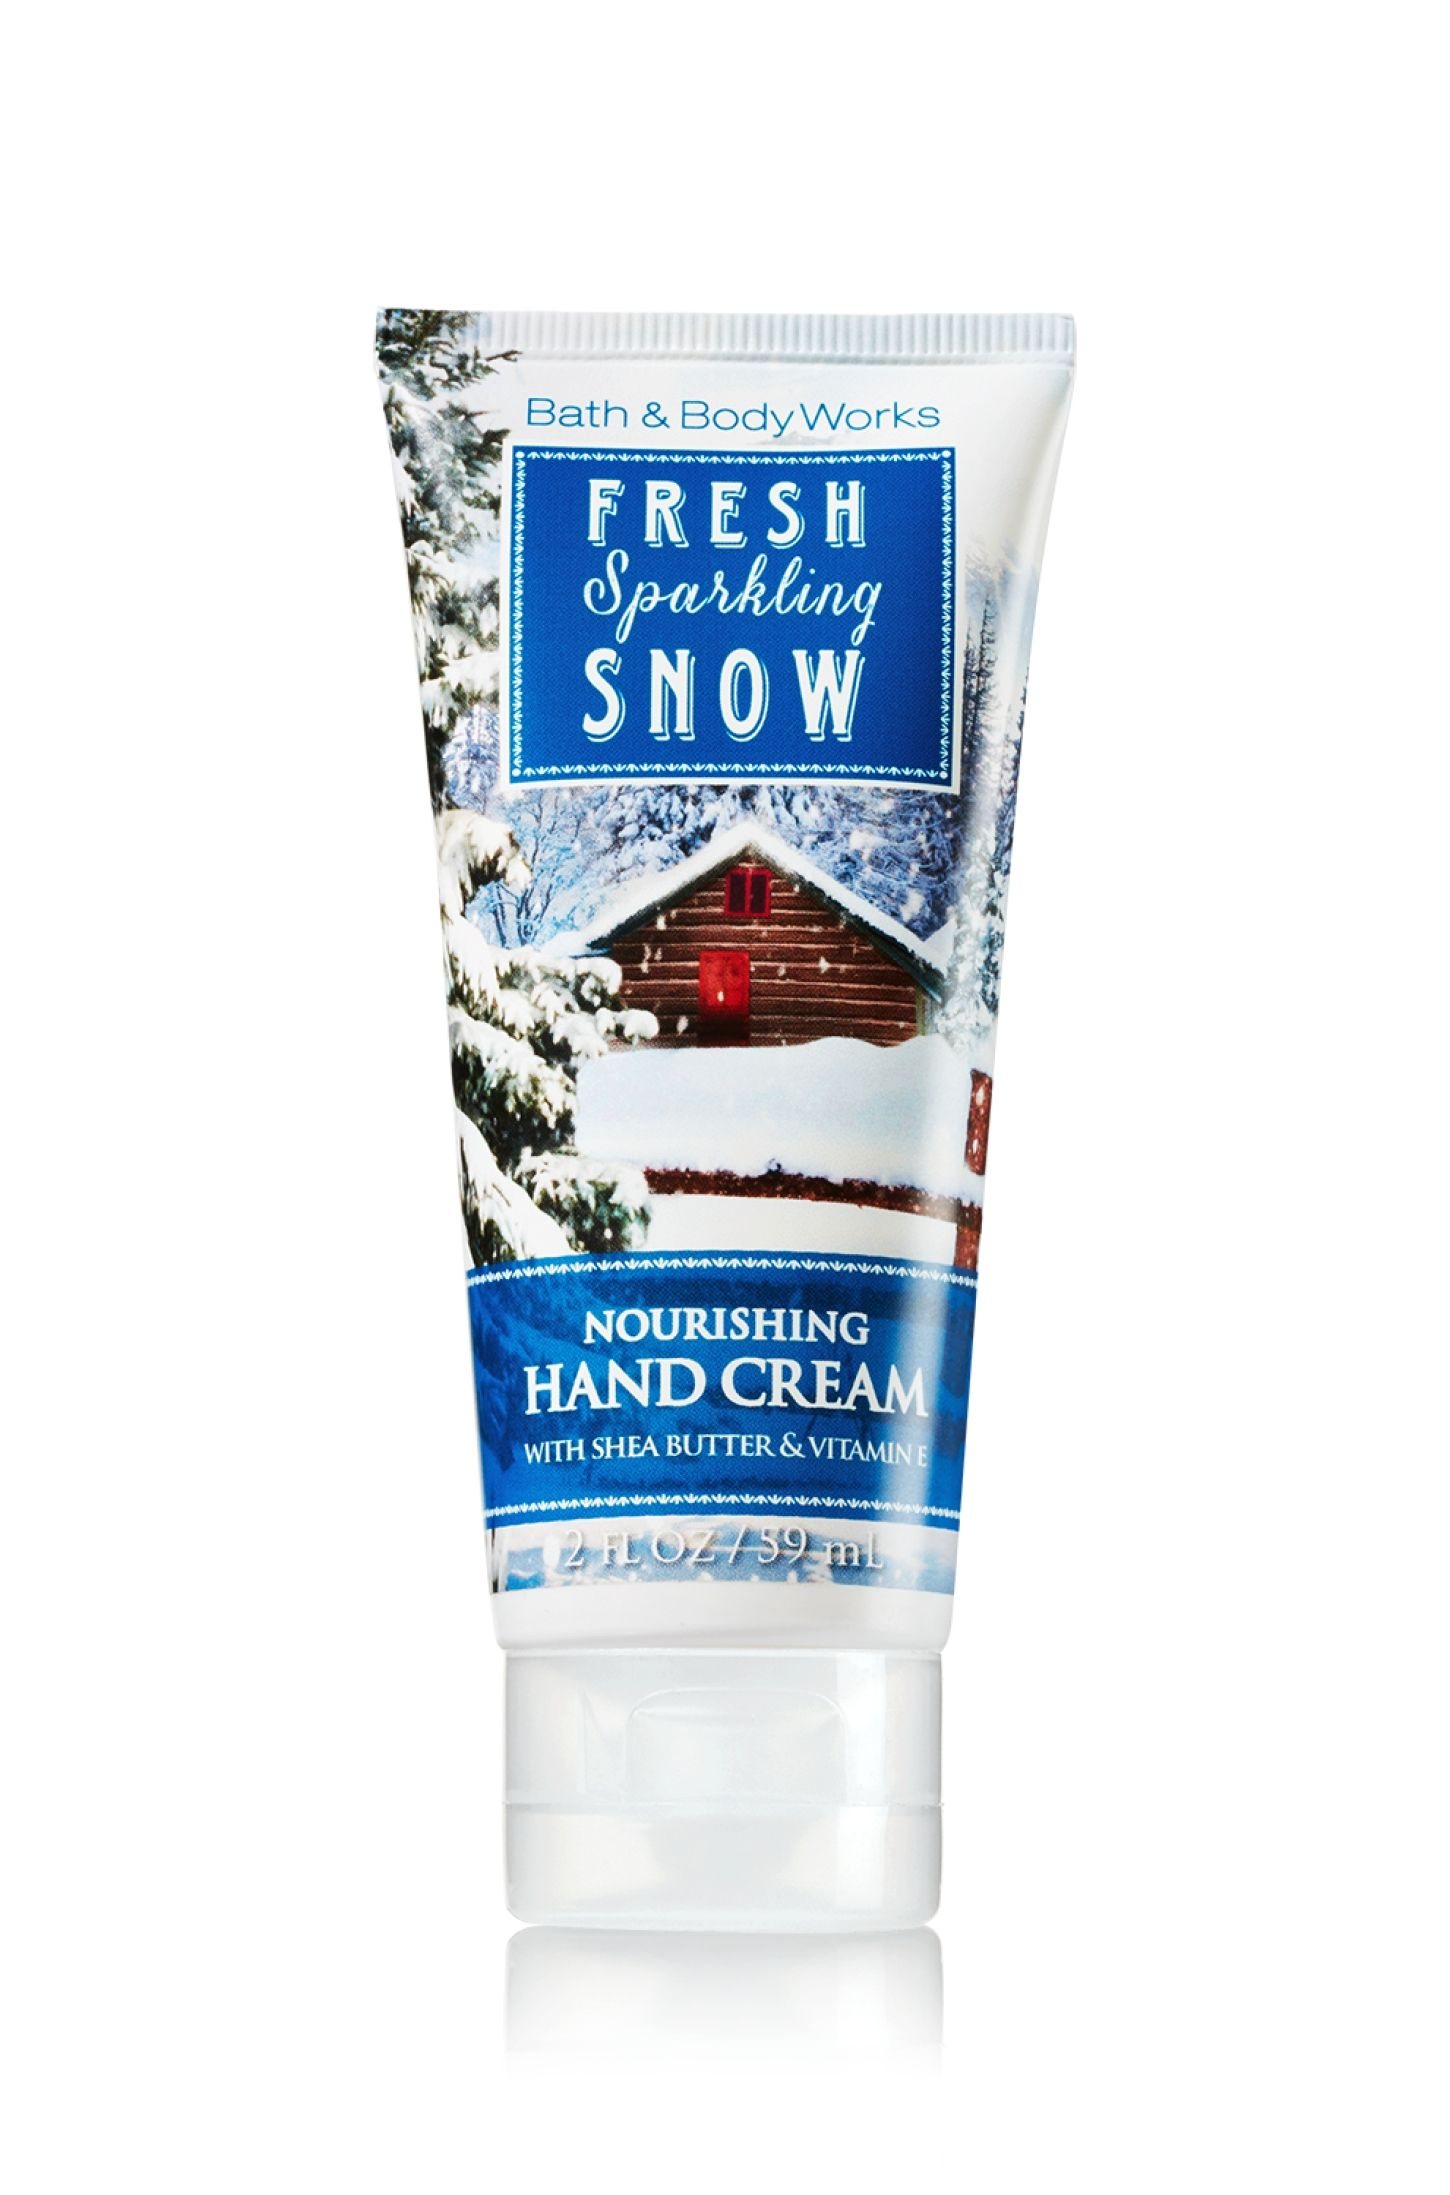 Fresh Sparkling Snow Nourishing Hand Cream Soap Sanitizer Bath